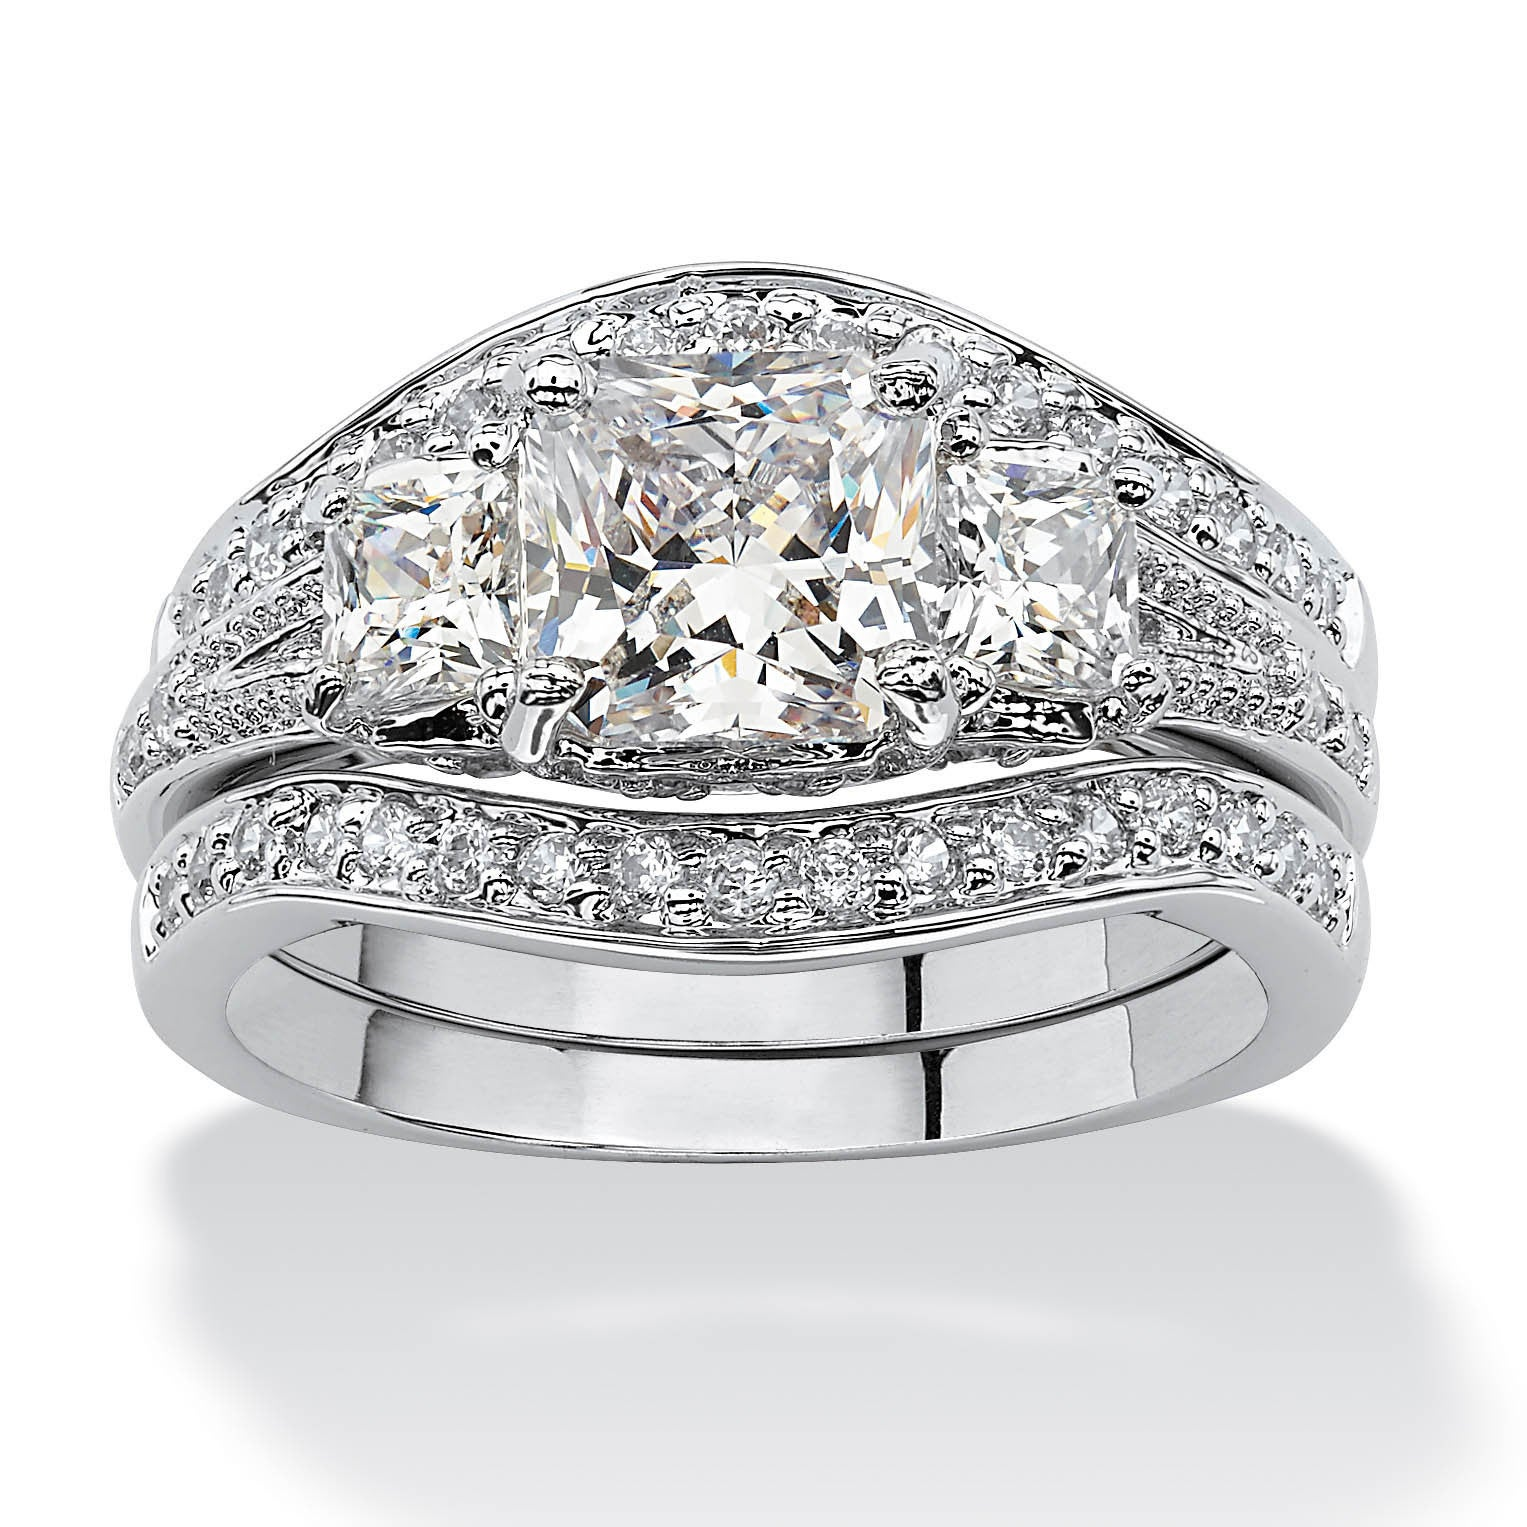 engagement wedding with magnificent and made to diamond kjeldsen platinum shoulders heidi jewellery order ring set